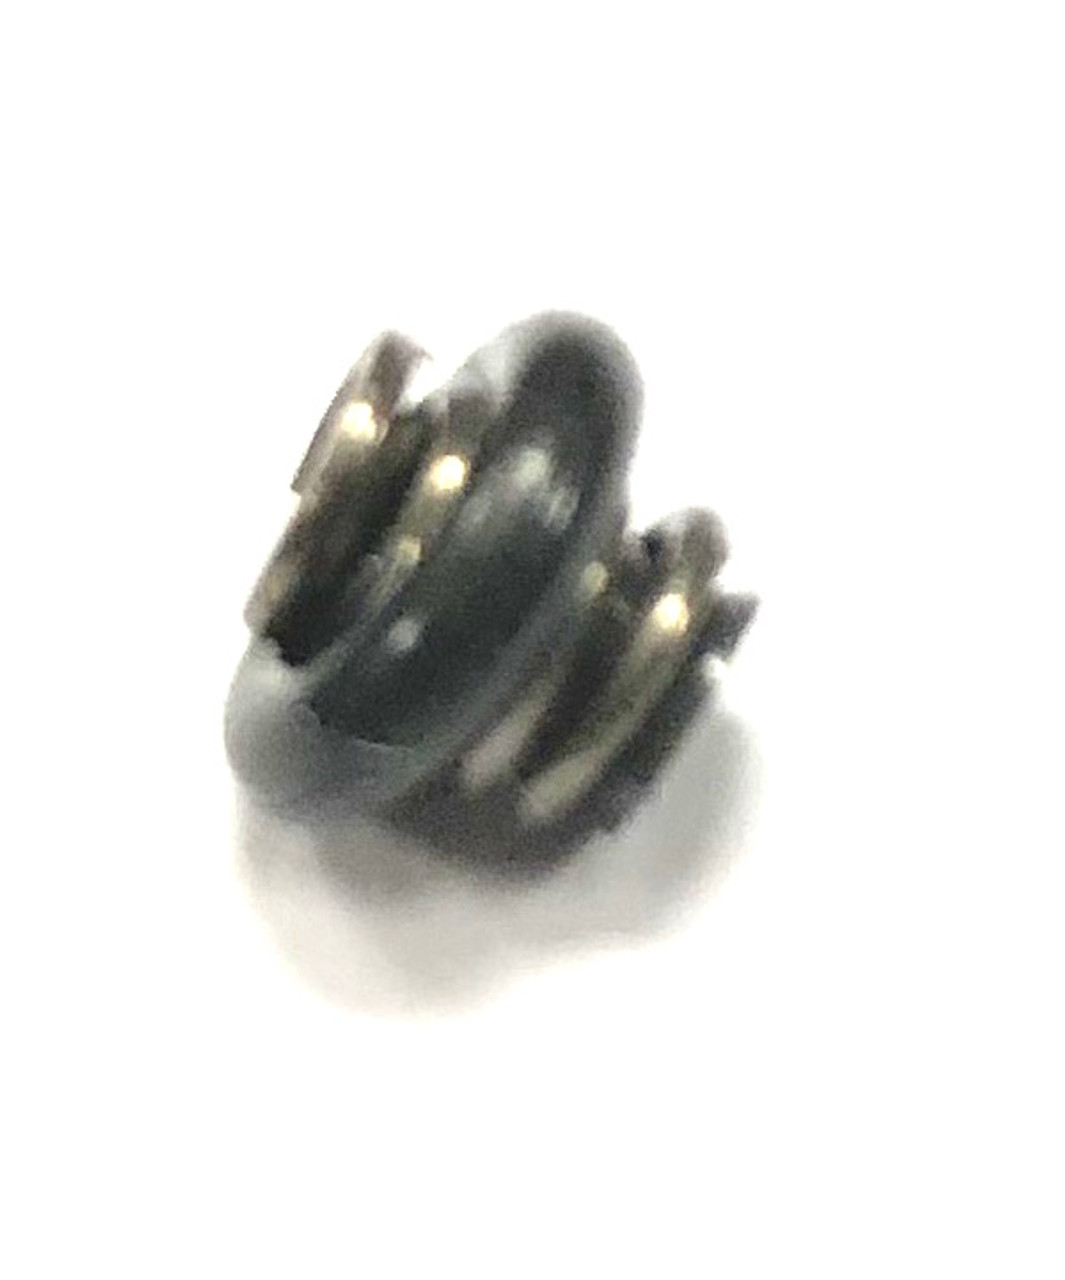 M16 Extract Spring with O-Ring and Insert